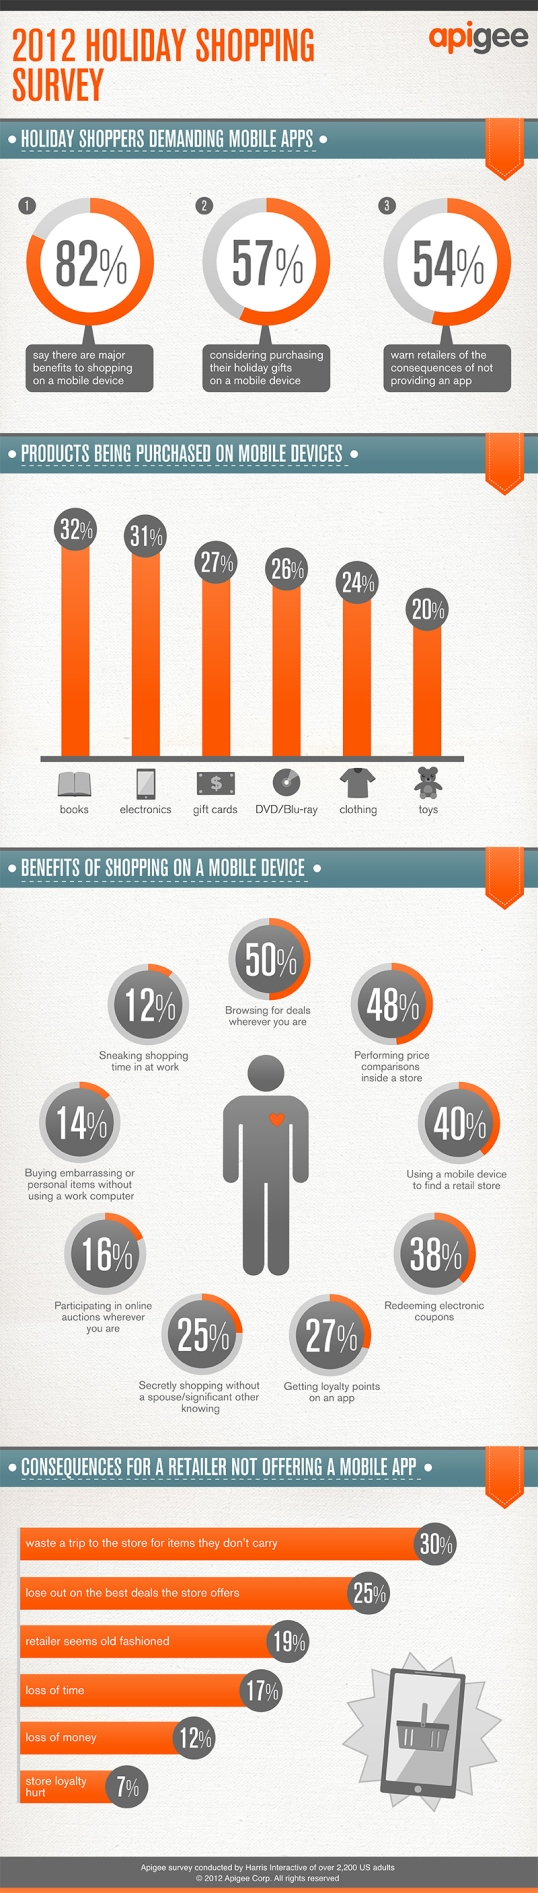 Apigee Infographic for Mobile Buying Statistics